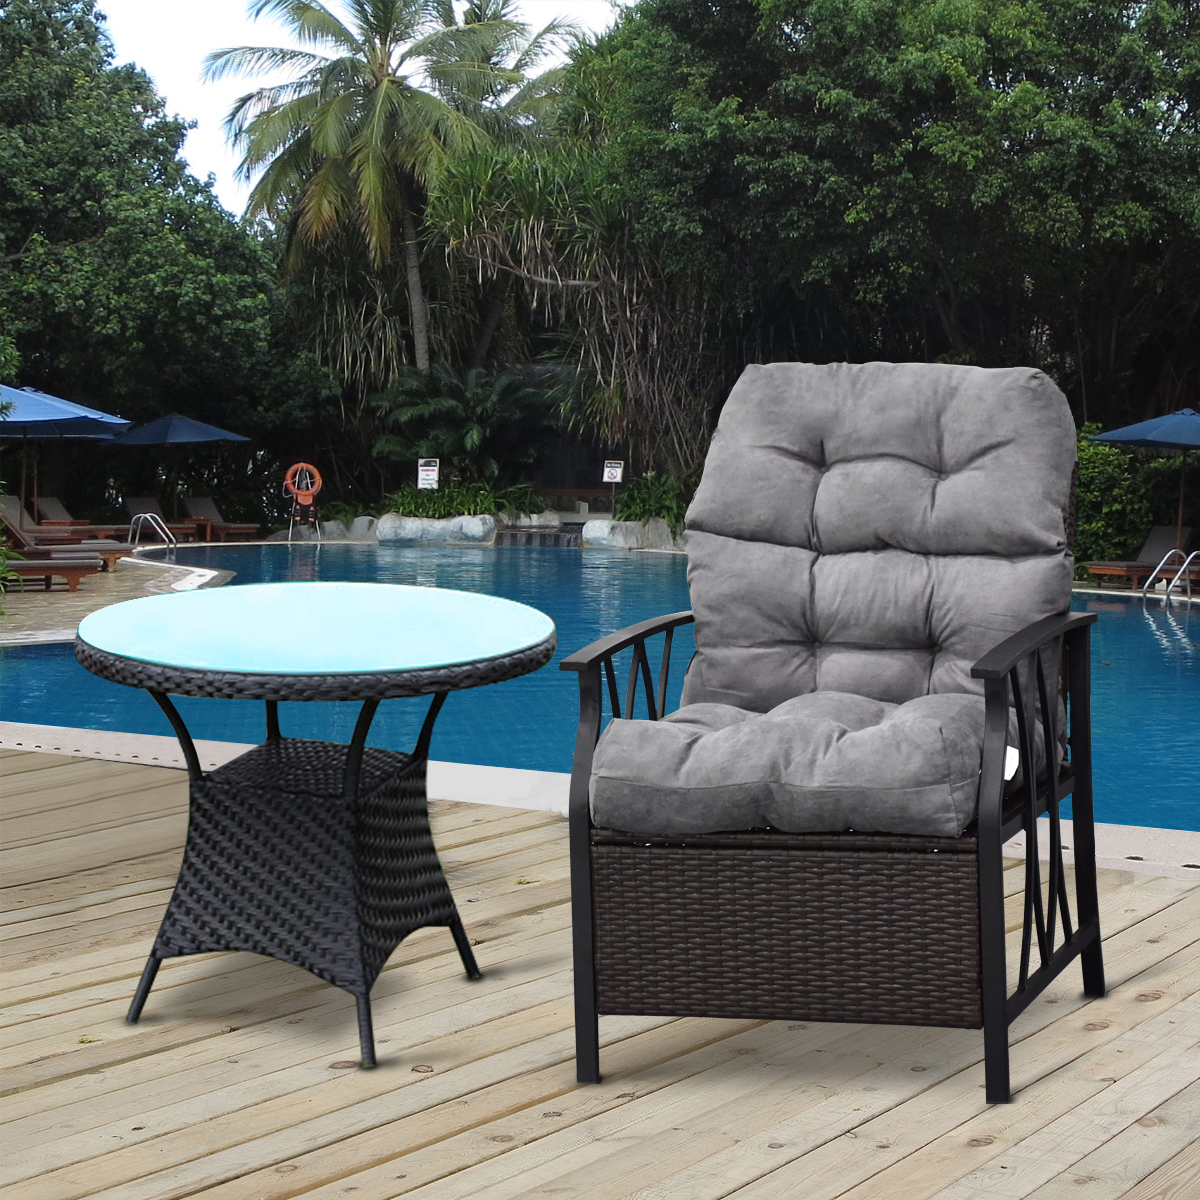 Costway 44'' High Back Chair CushionTufted Pillow Indoor Outdoor Swing Glider Seat Gray